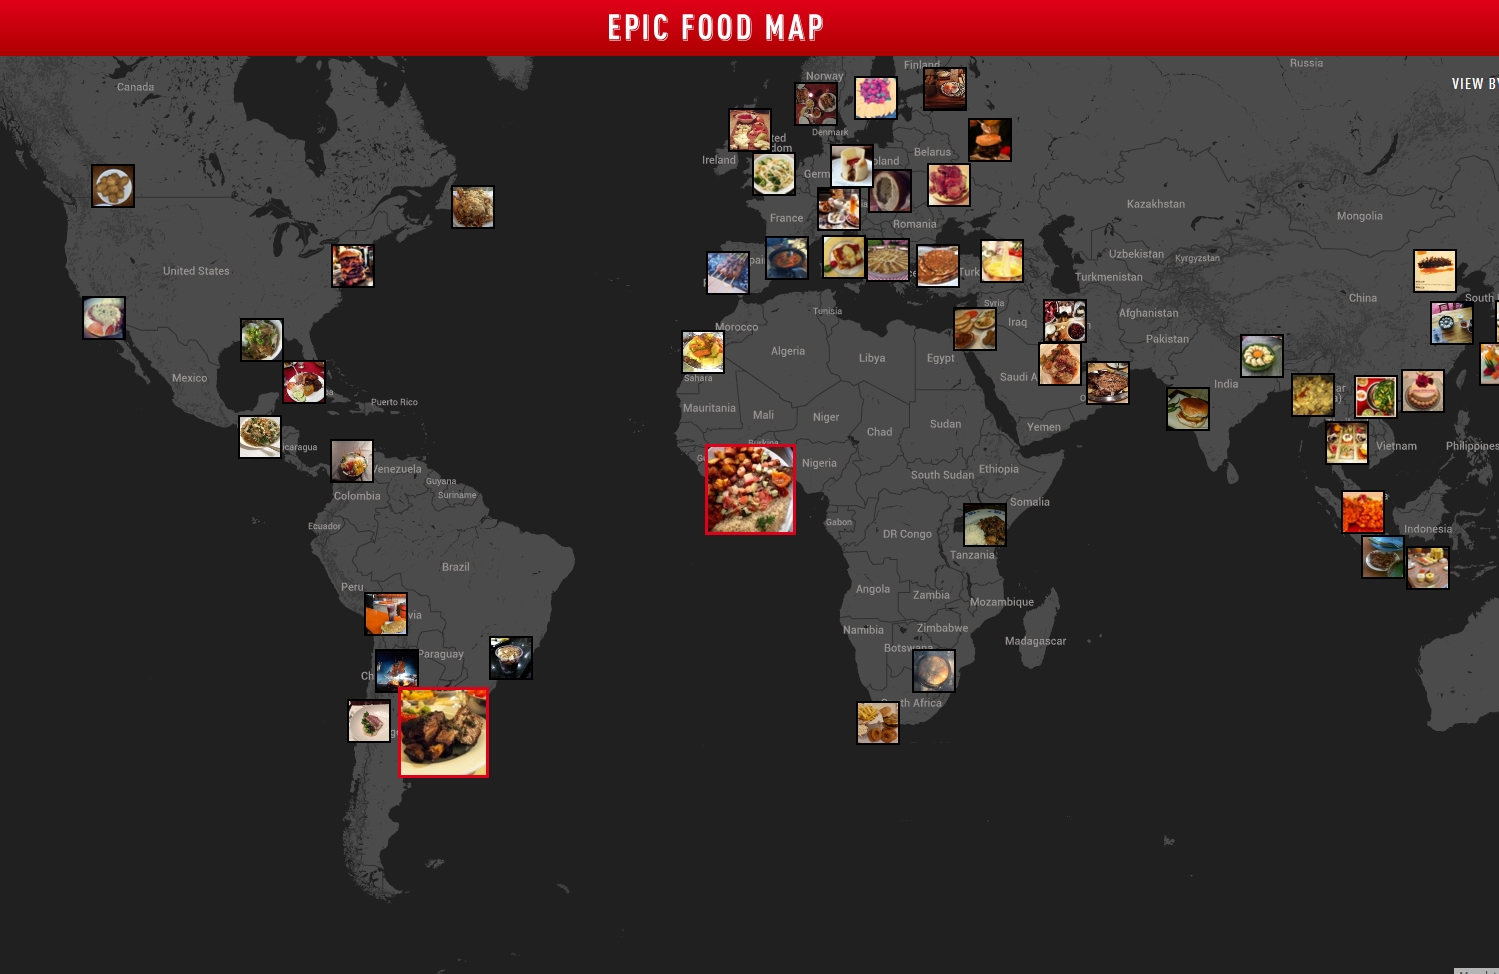 THY_Turkish Airlines_epic food map